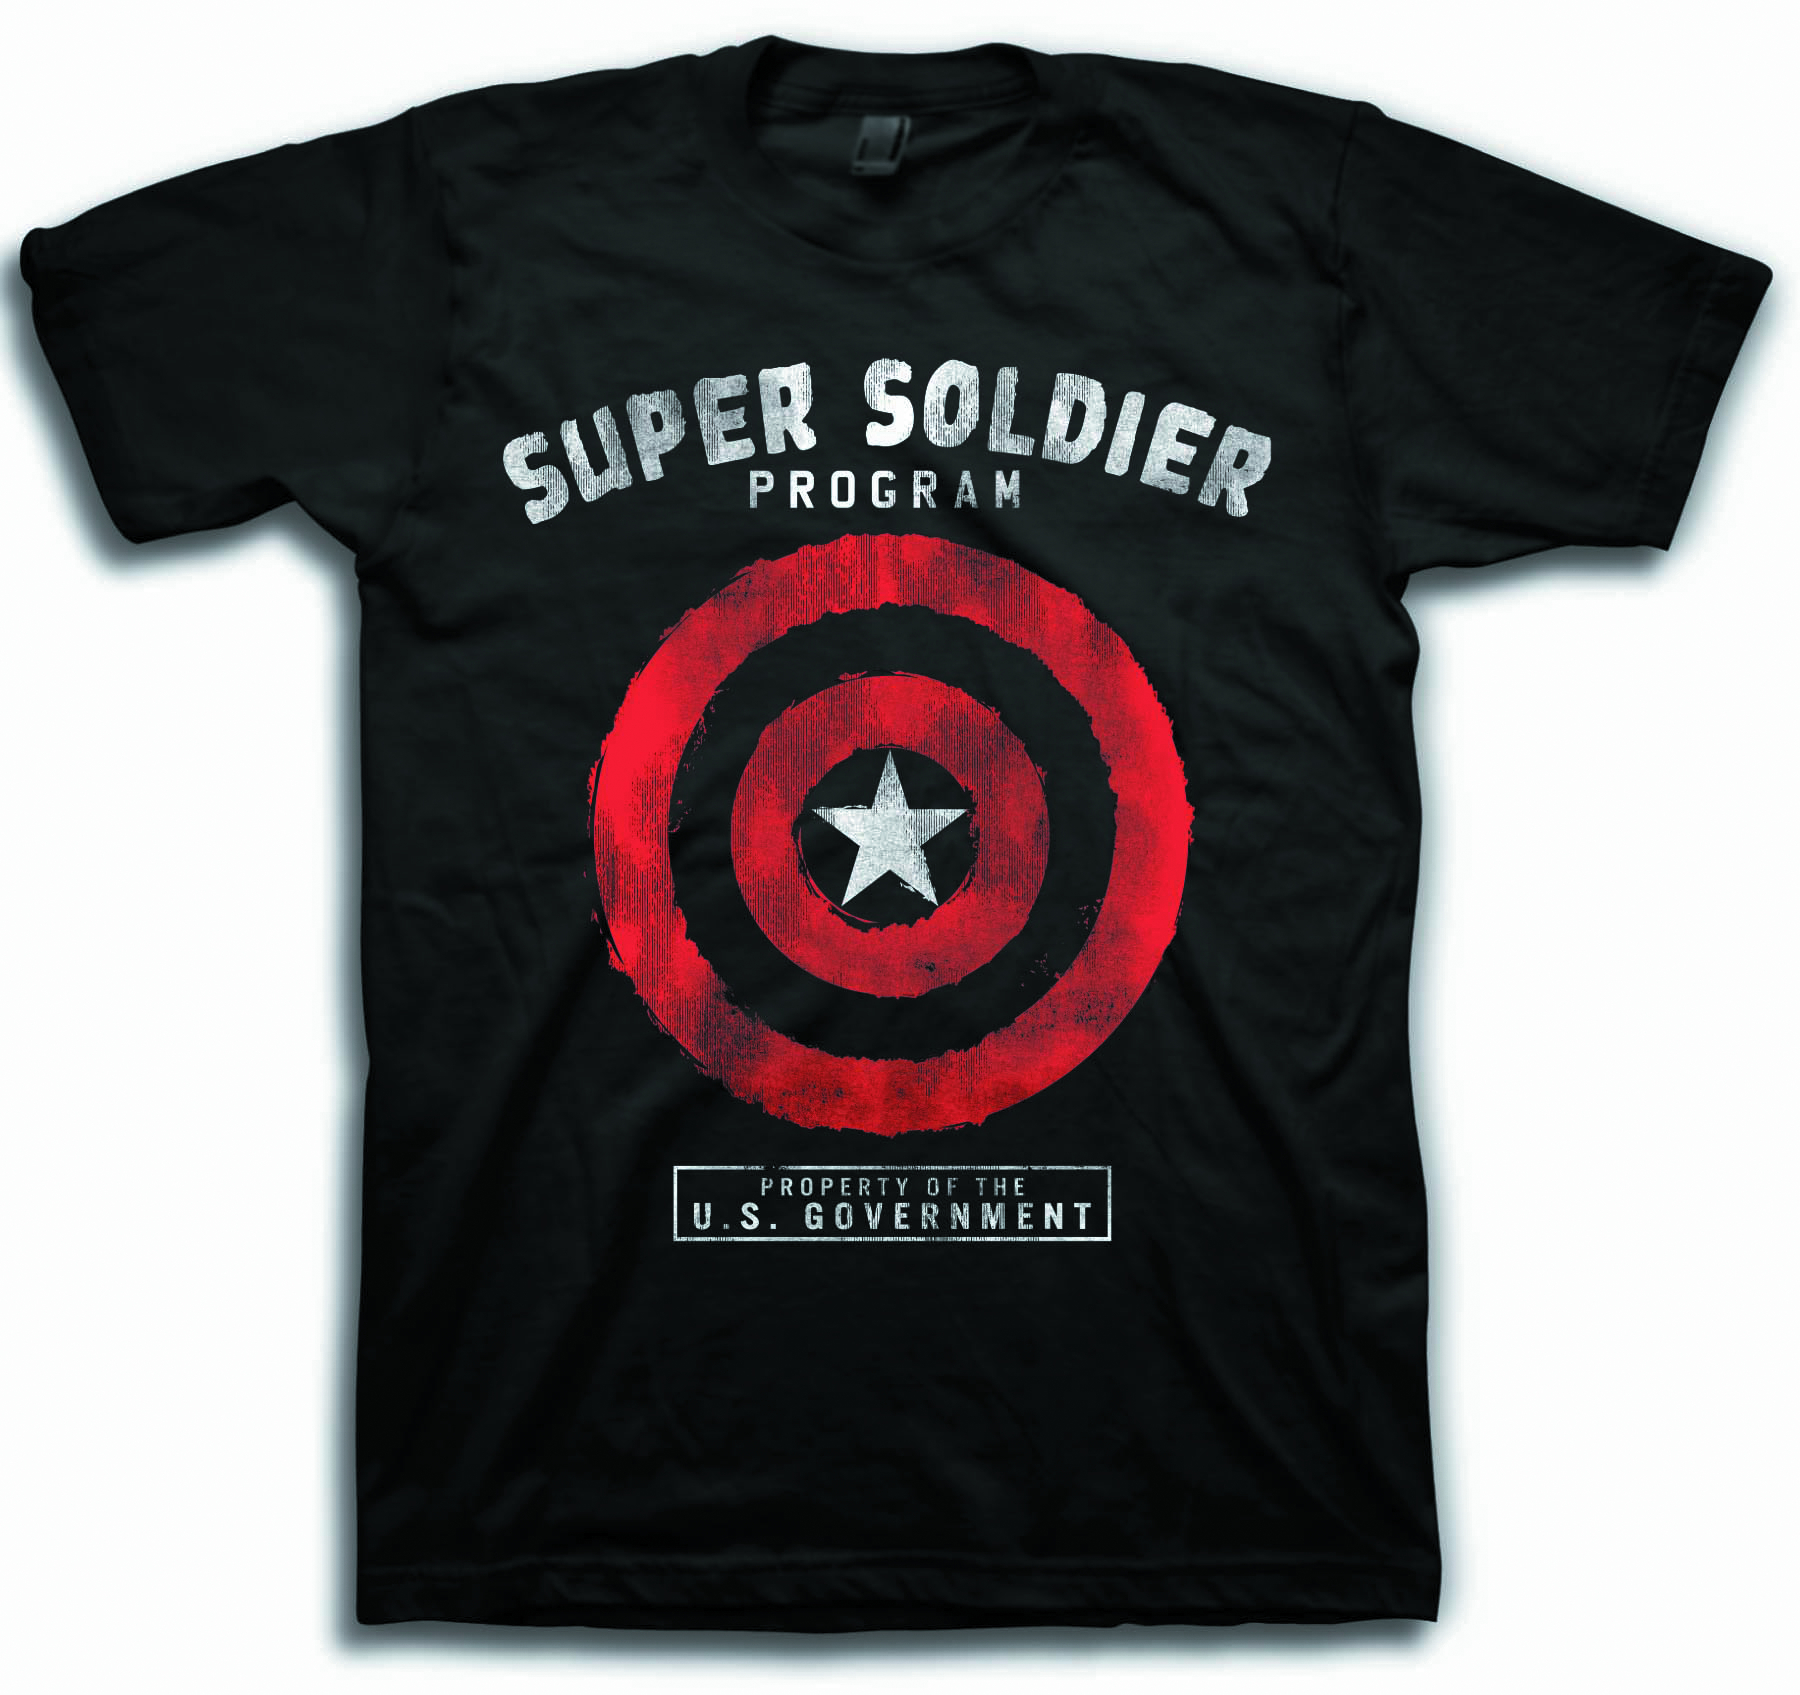 SUPER SOLDIER PROGRAM BLK T/S XL